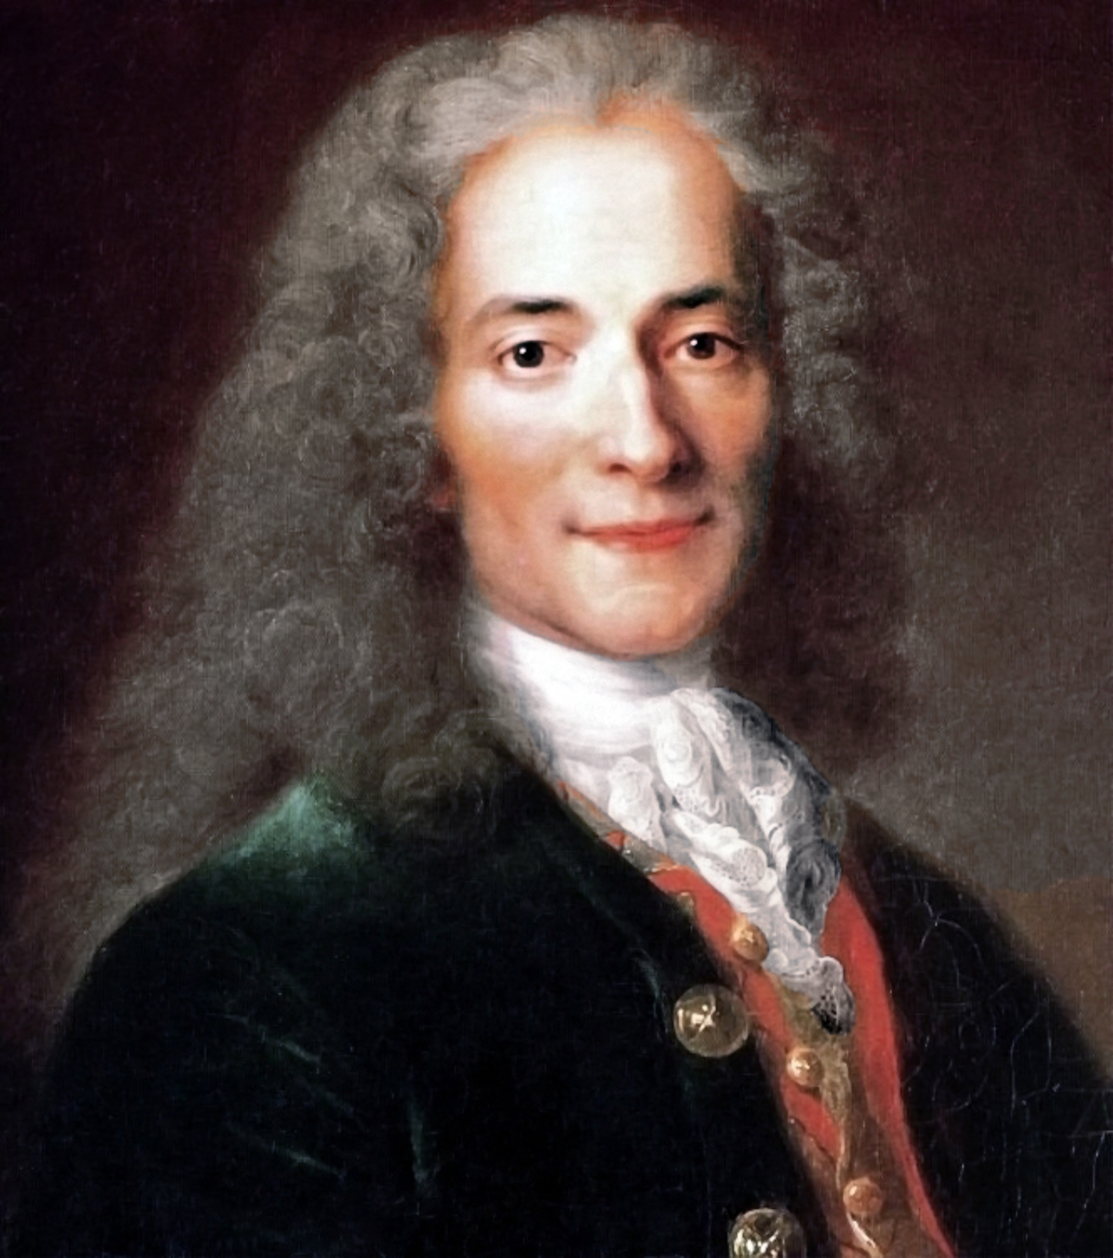 Voltaire celebrated Montaigne as one of the wisest and most amiable philosophers.